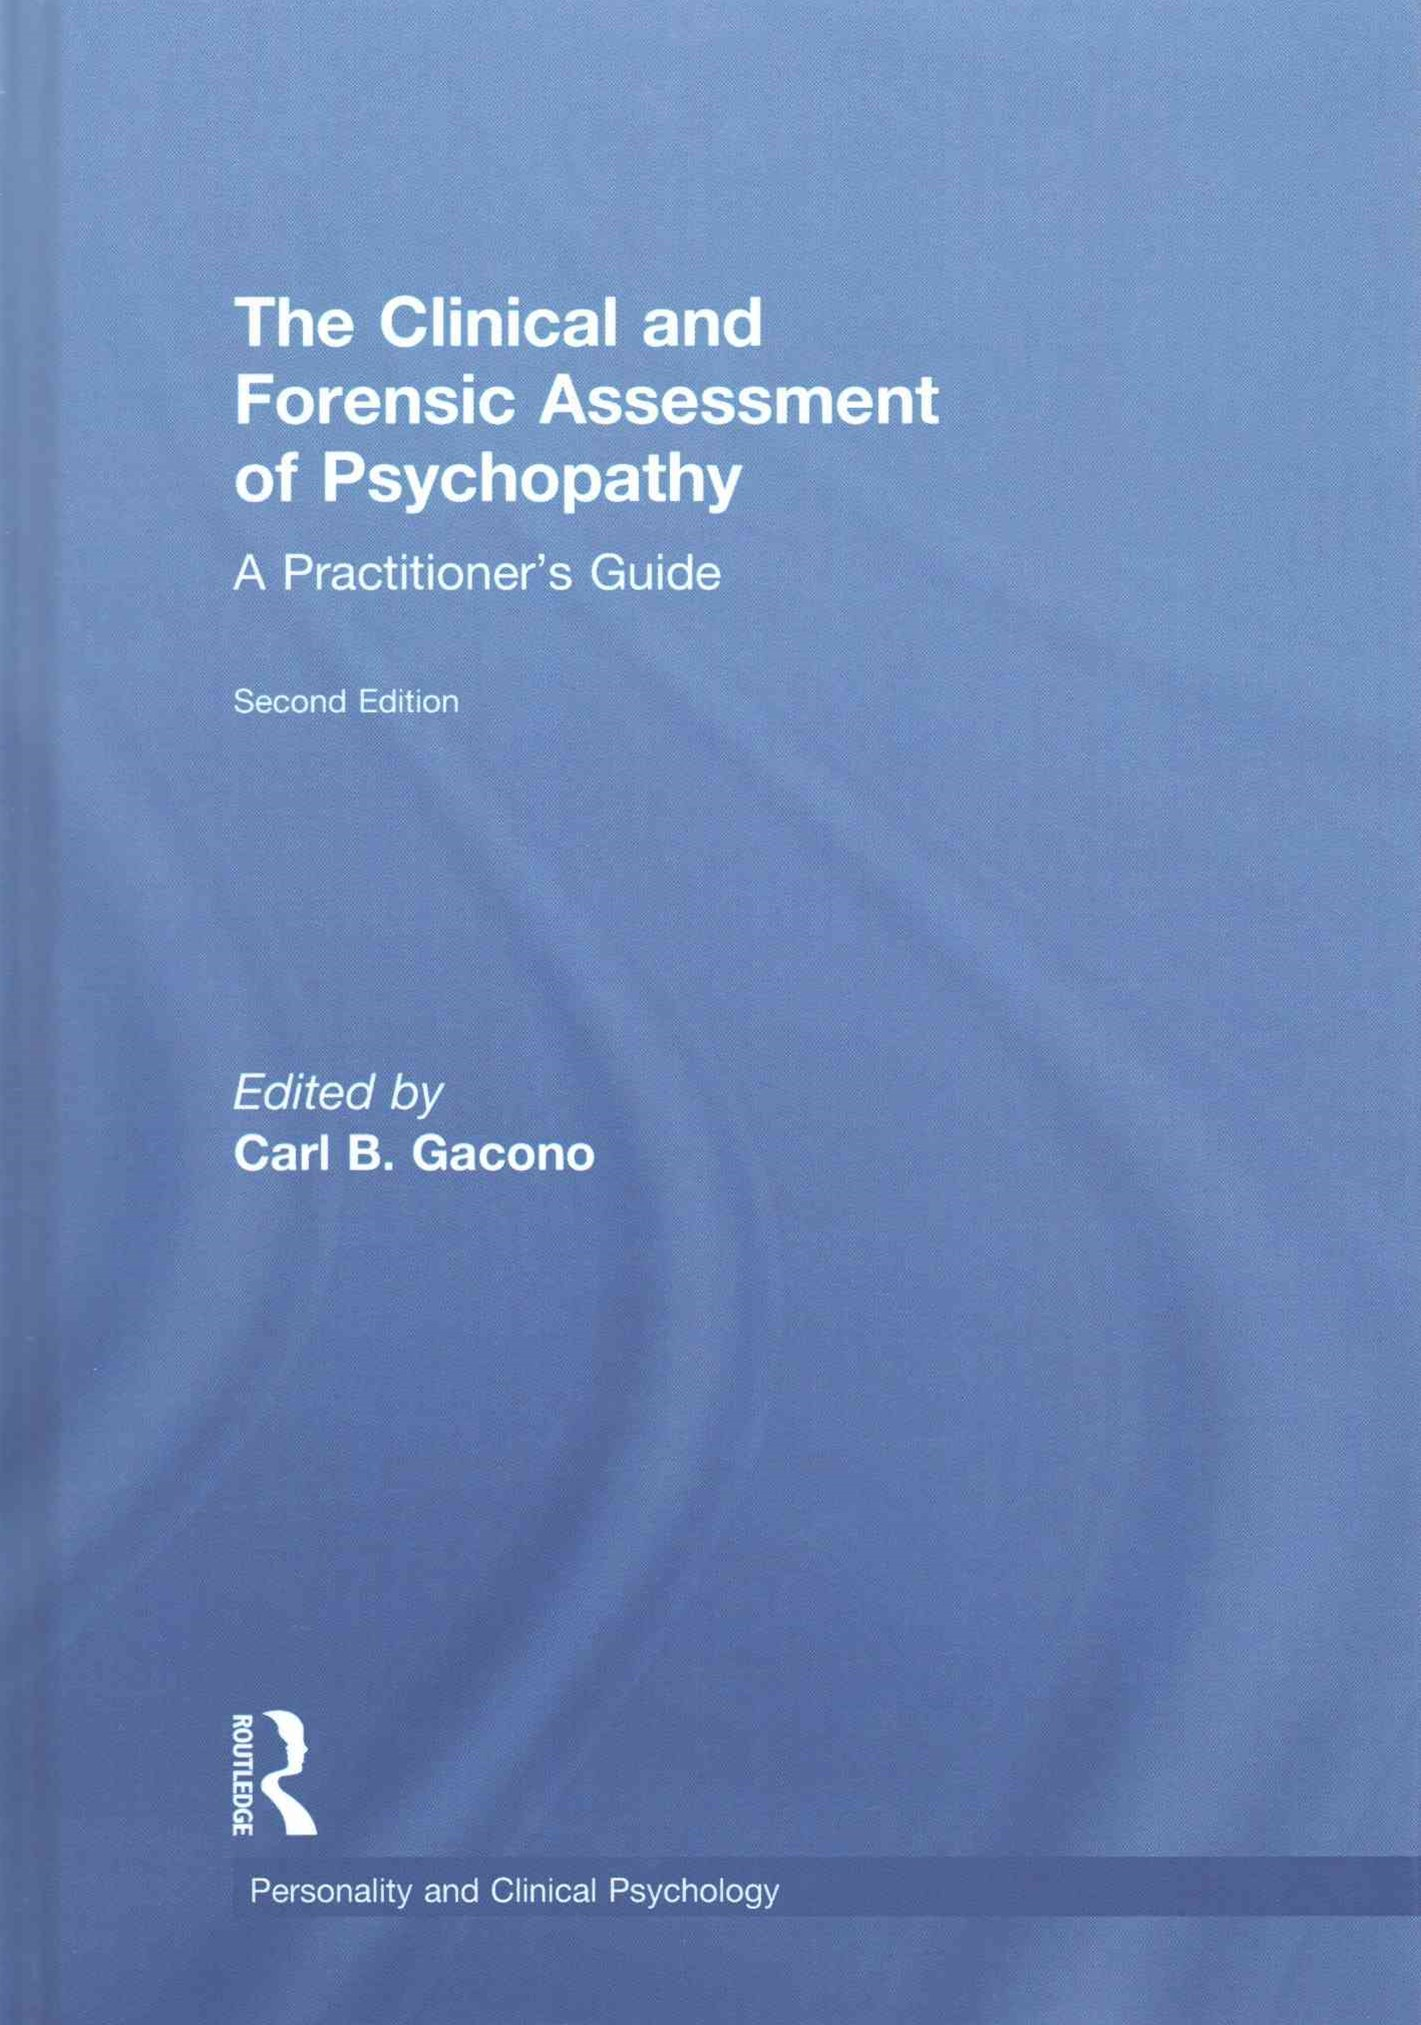 The Clinical and Forensic Assessment of Psychopathy